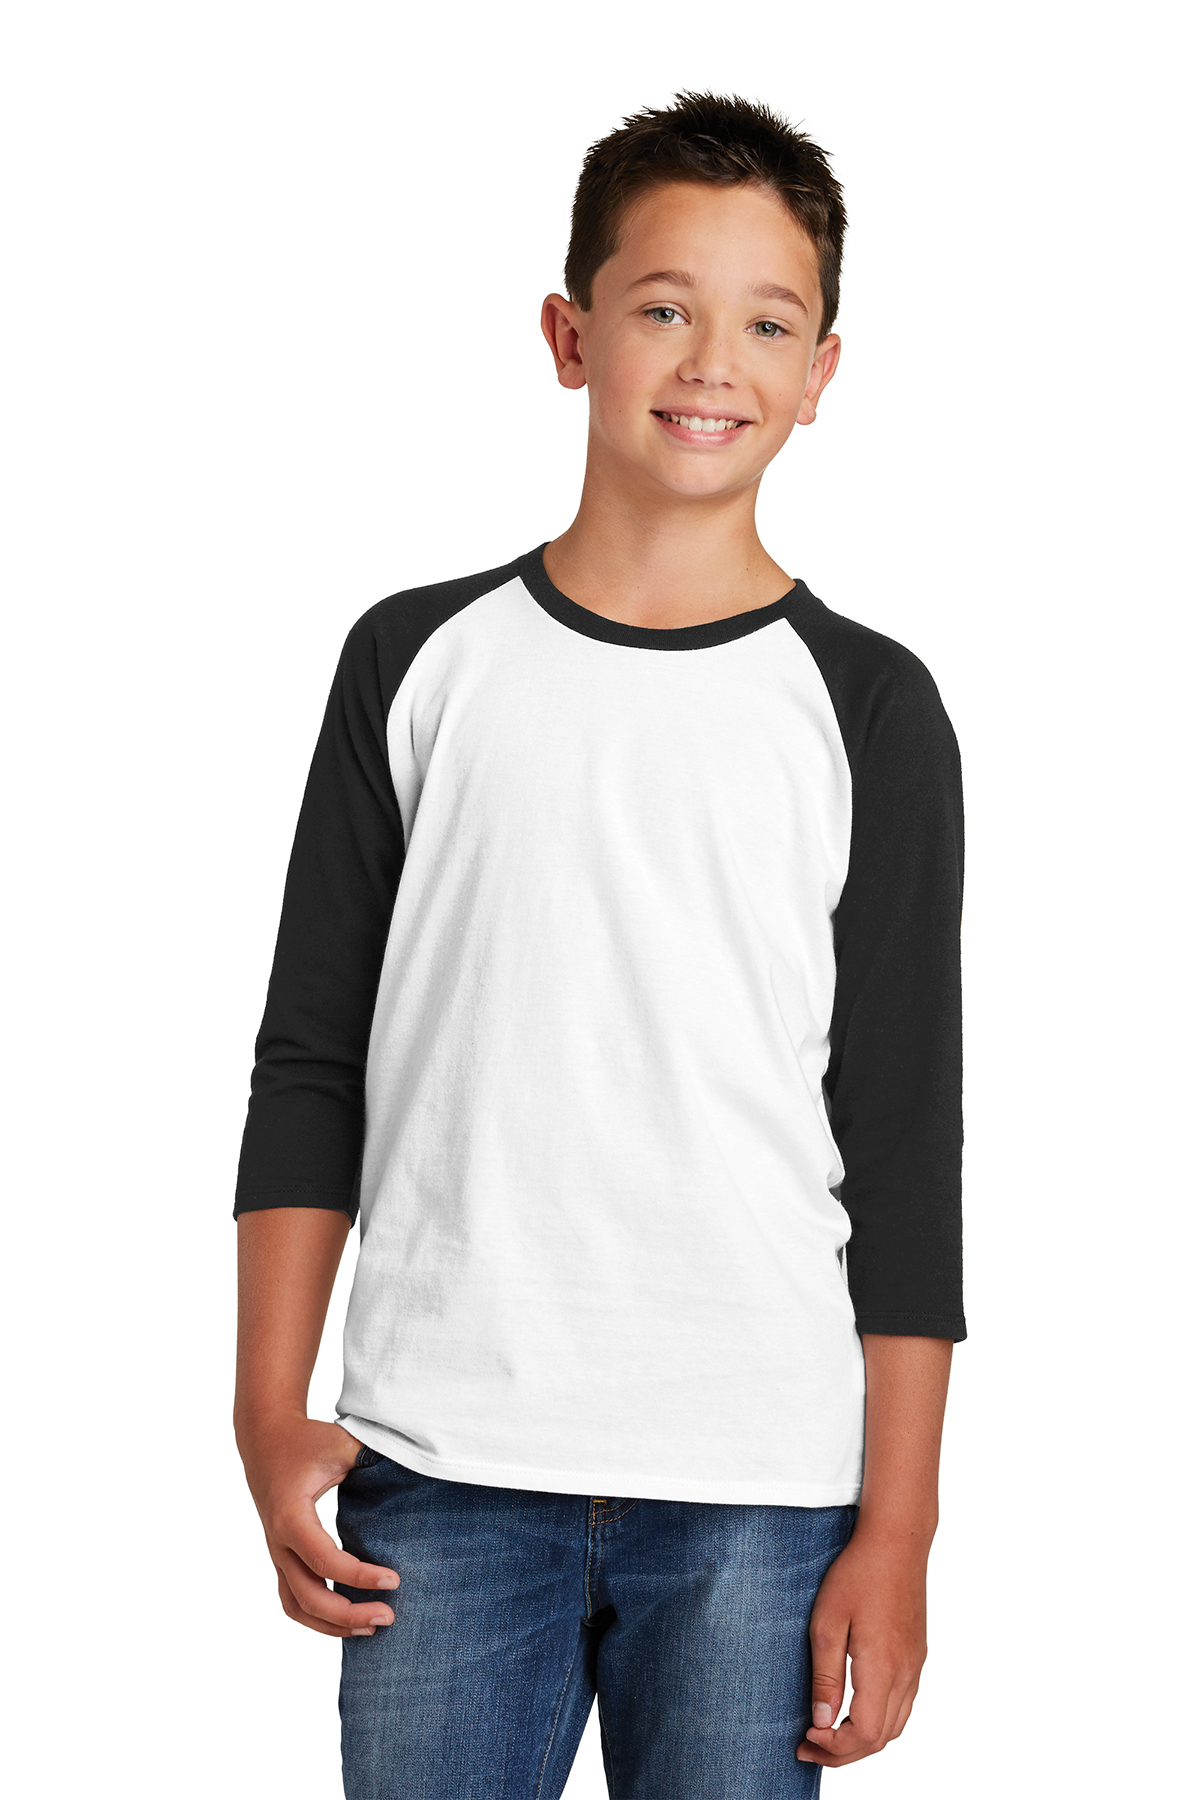 District DT6210Y - Youth Very Important Tee 3/4-Sleeve ...